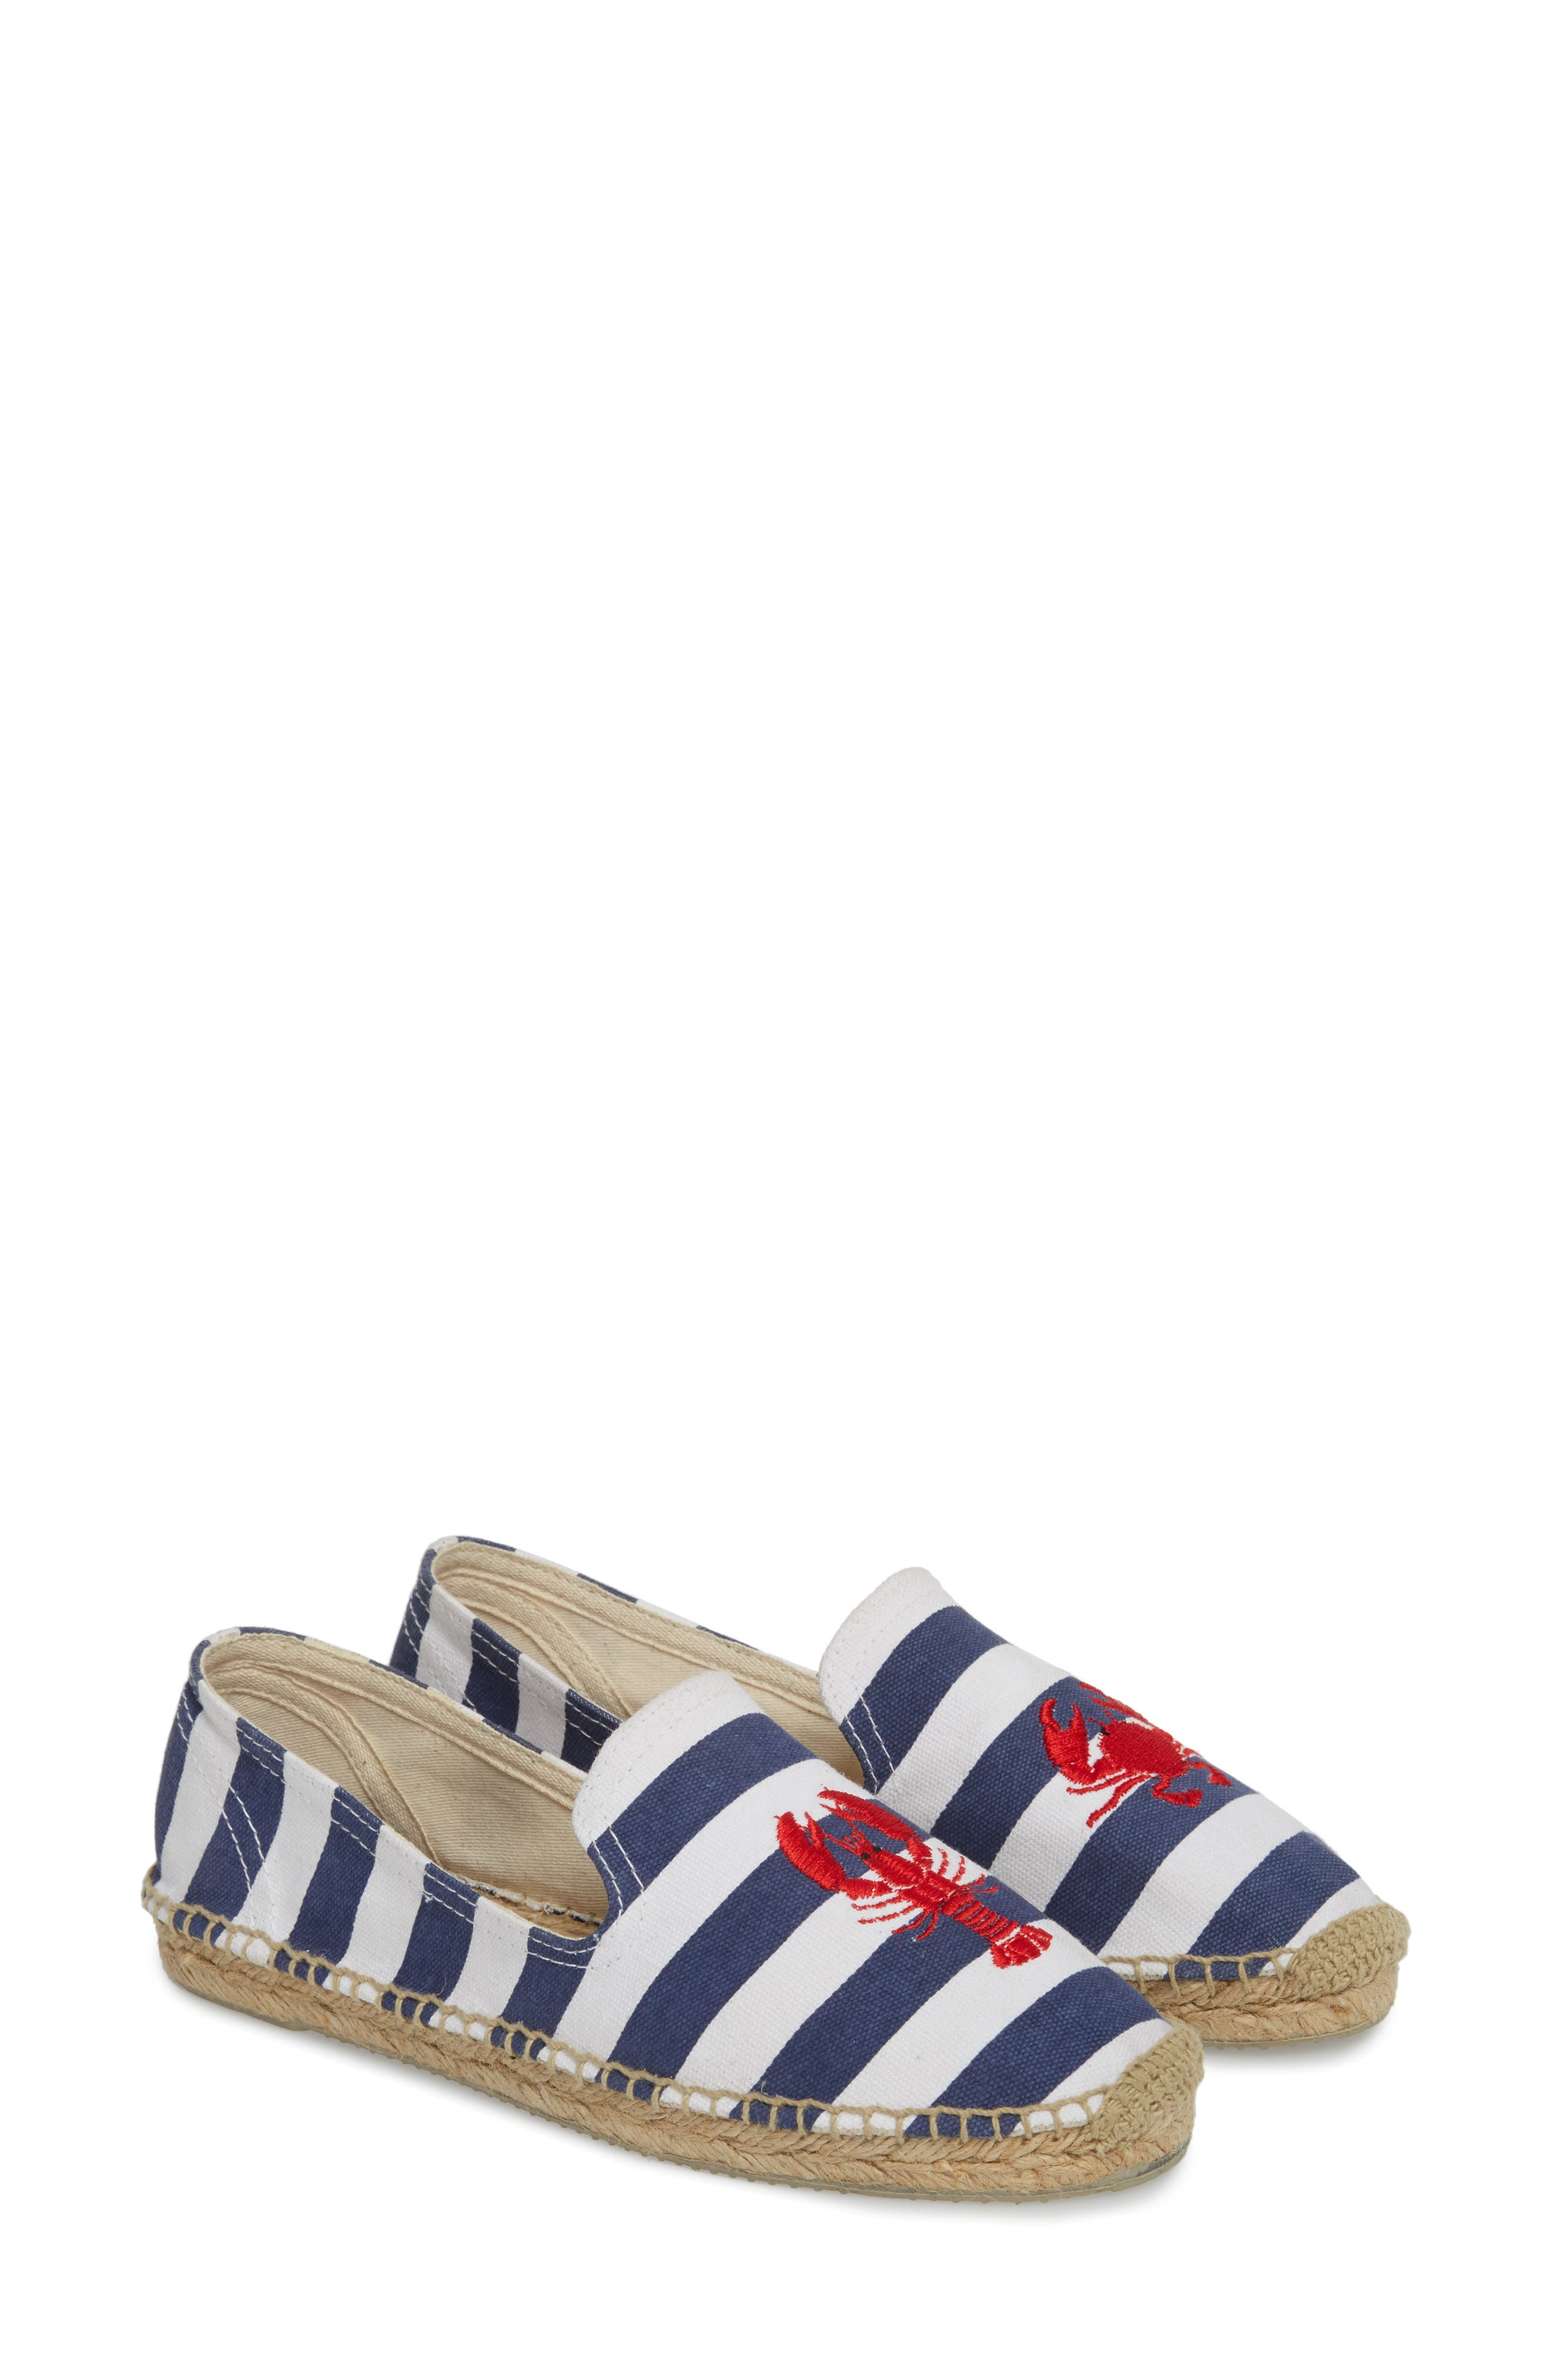 Embroidered Lobster & Crab Espadrille Flat,                             Alternate thumbnail 2, color,                             415